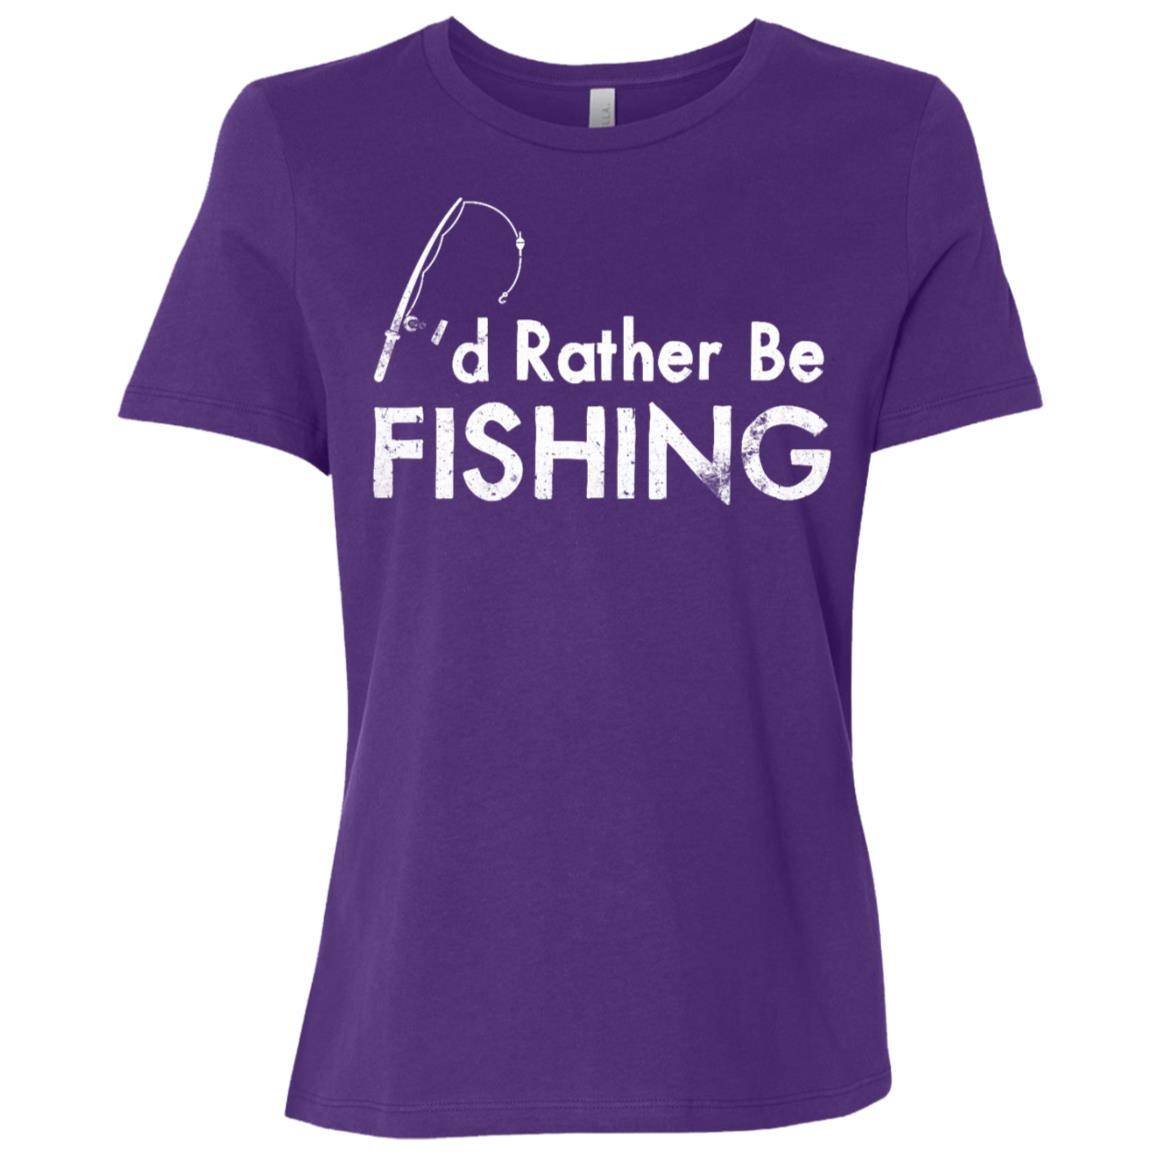 I'd Rather Be Fishing Camping Funny Camping -3 Women Short Sleeve T-Shirt